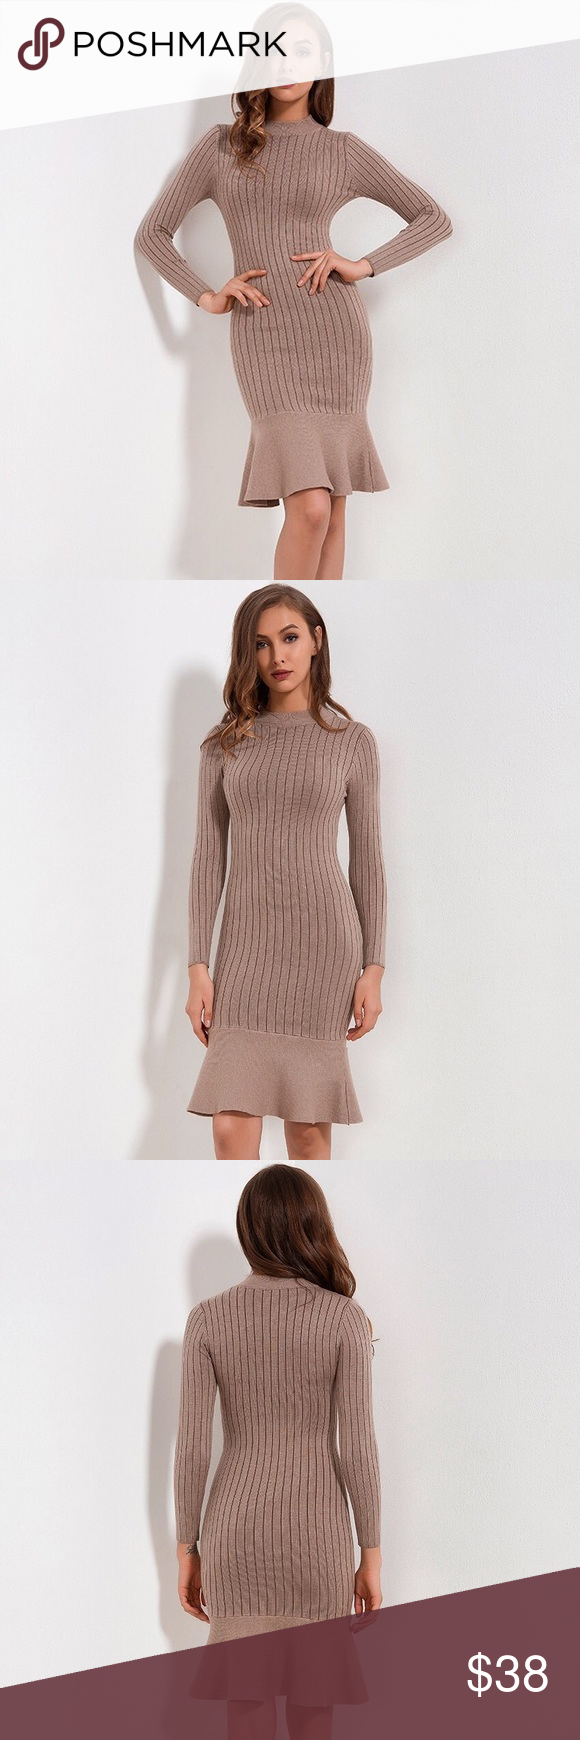 f494b96bfdd Nude ribbed knit long sleeve dress Very soft and comfy